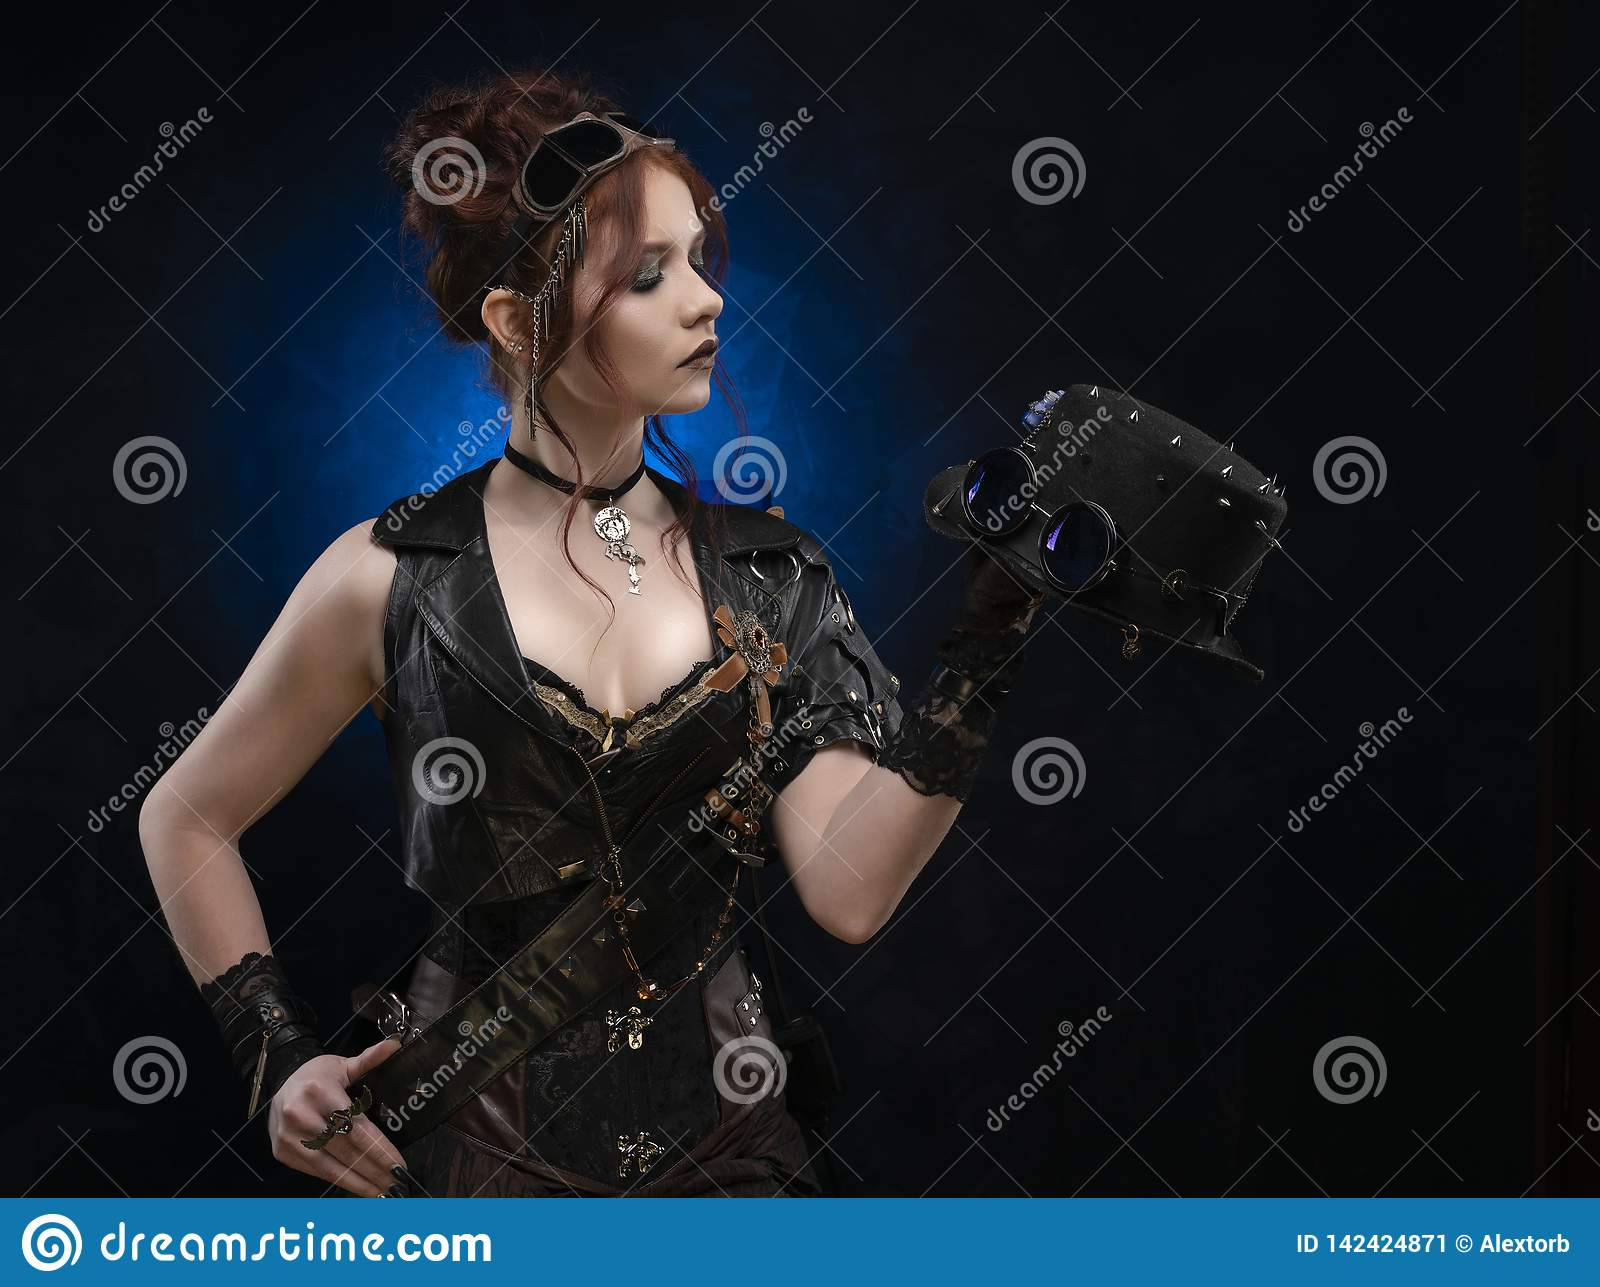 Beautiful redhead cosplayer girl wearing a Victorian-style steampunk corset and leather vest, with large breasts in a deep